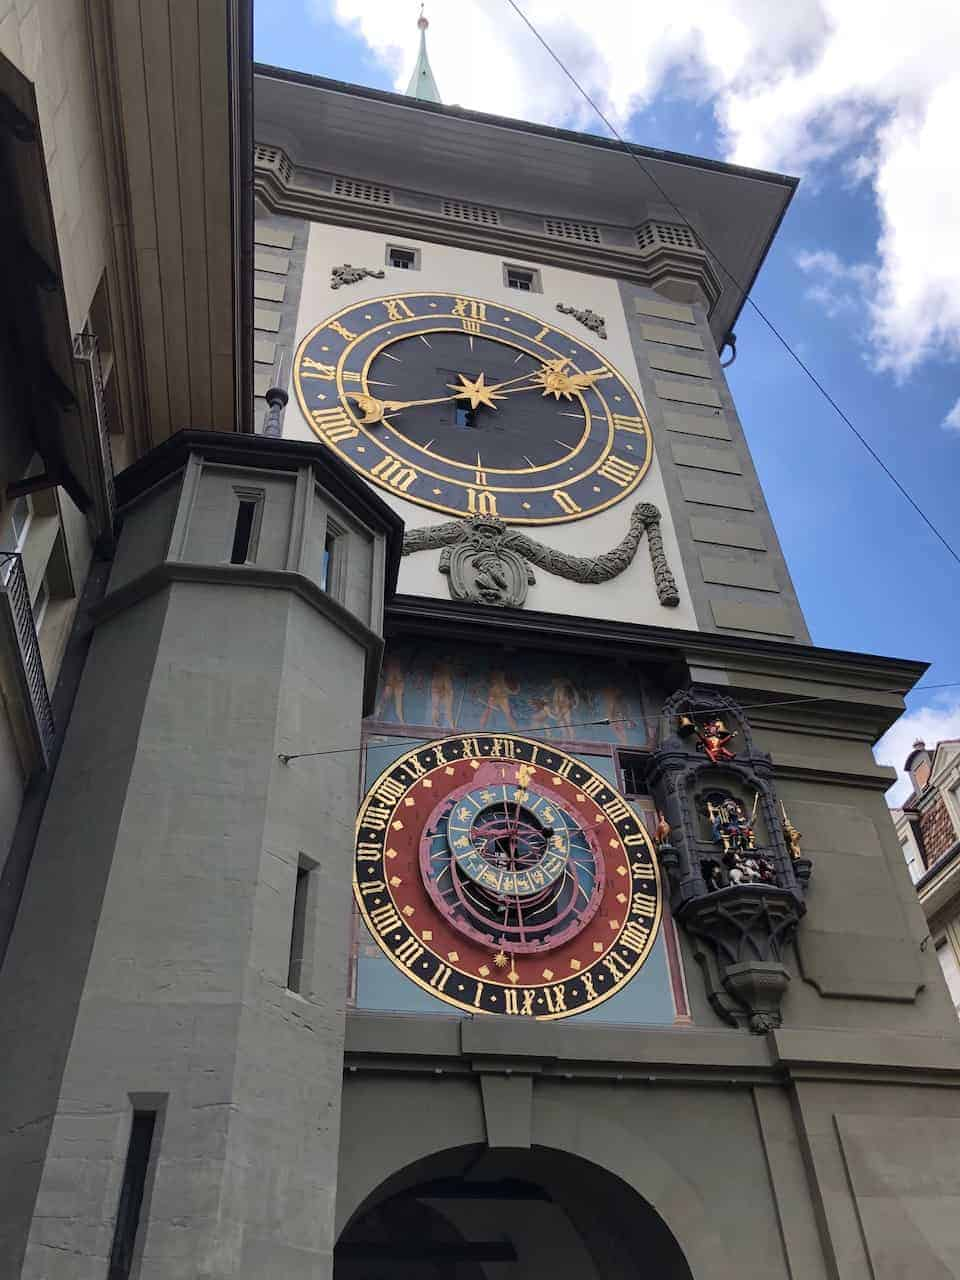 Zytalogge Bern Clock Tower